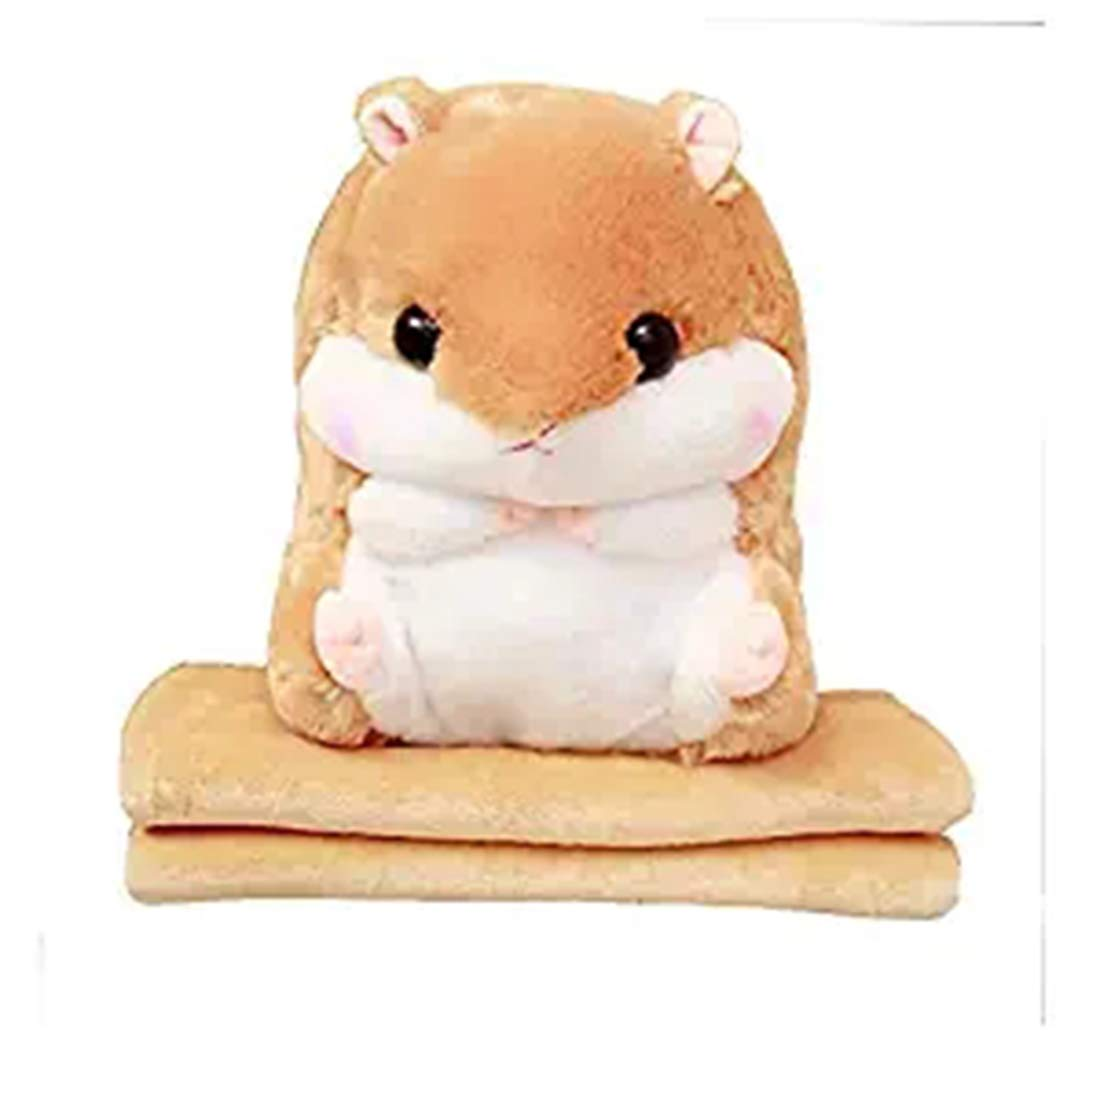 Cute Hamster Pillow 3 in 1 Hamster Plush Stuffed Animal Toys Throw Pillow Blanket Set,Car Pillow Dual Use Large Coral Fleece Blanket,39x 67 Inch,Lightbrown